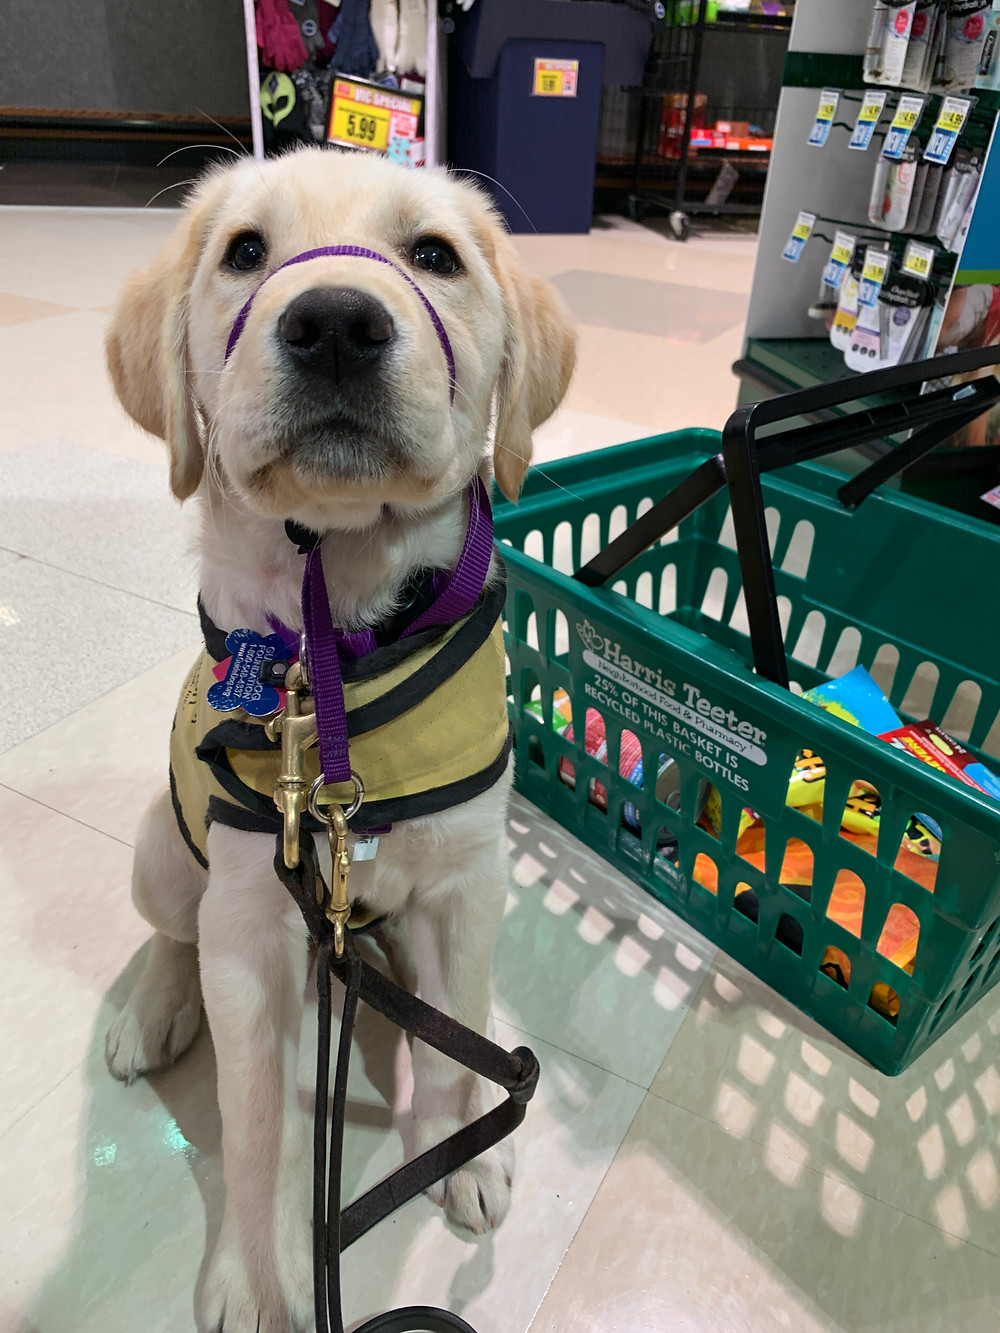 A small yellow lab puppy wearing a yellow training vest and purple gentle leader sits in the grocery store. Next to her is a green shopping basket with groceries in it.